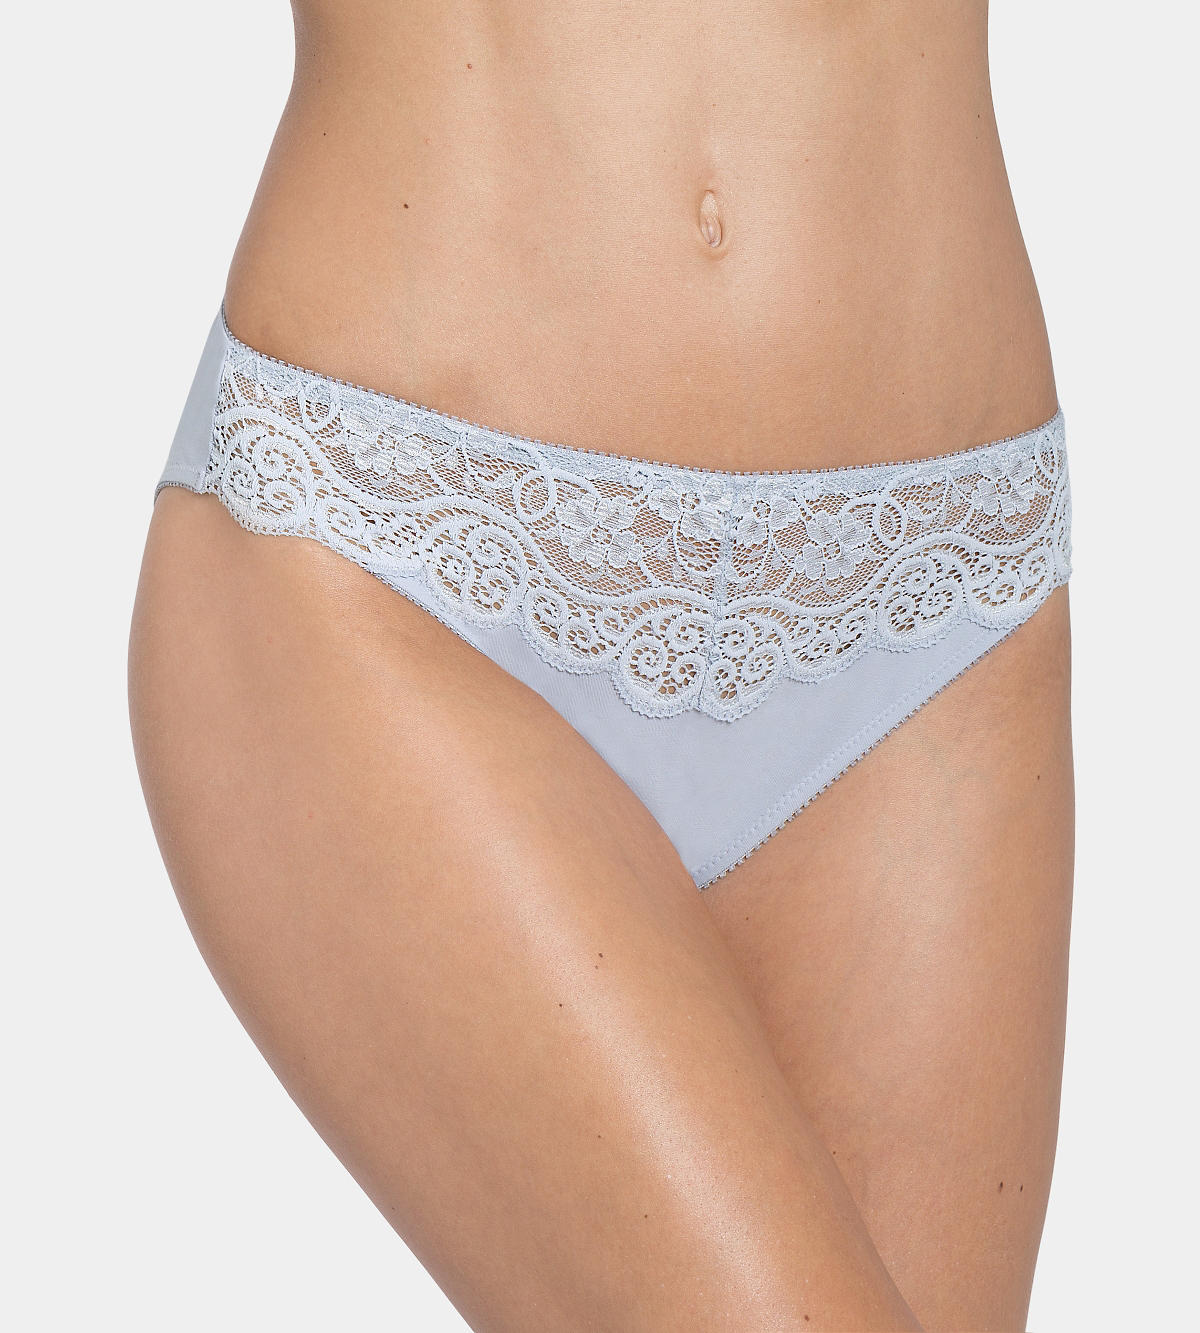 AMOURETTE 300 COTTON & LACE